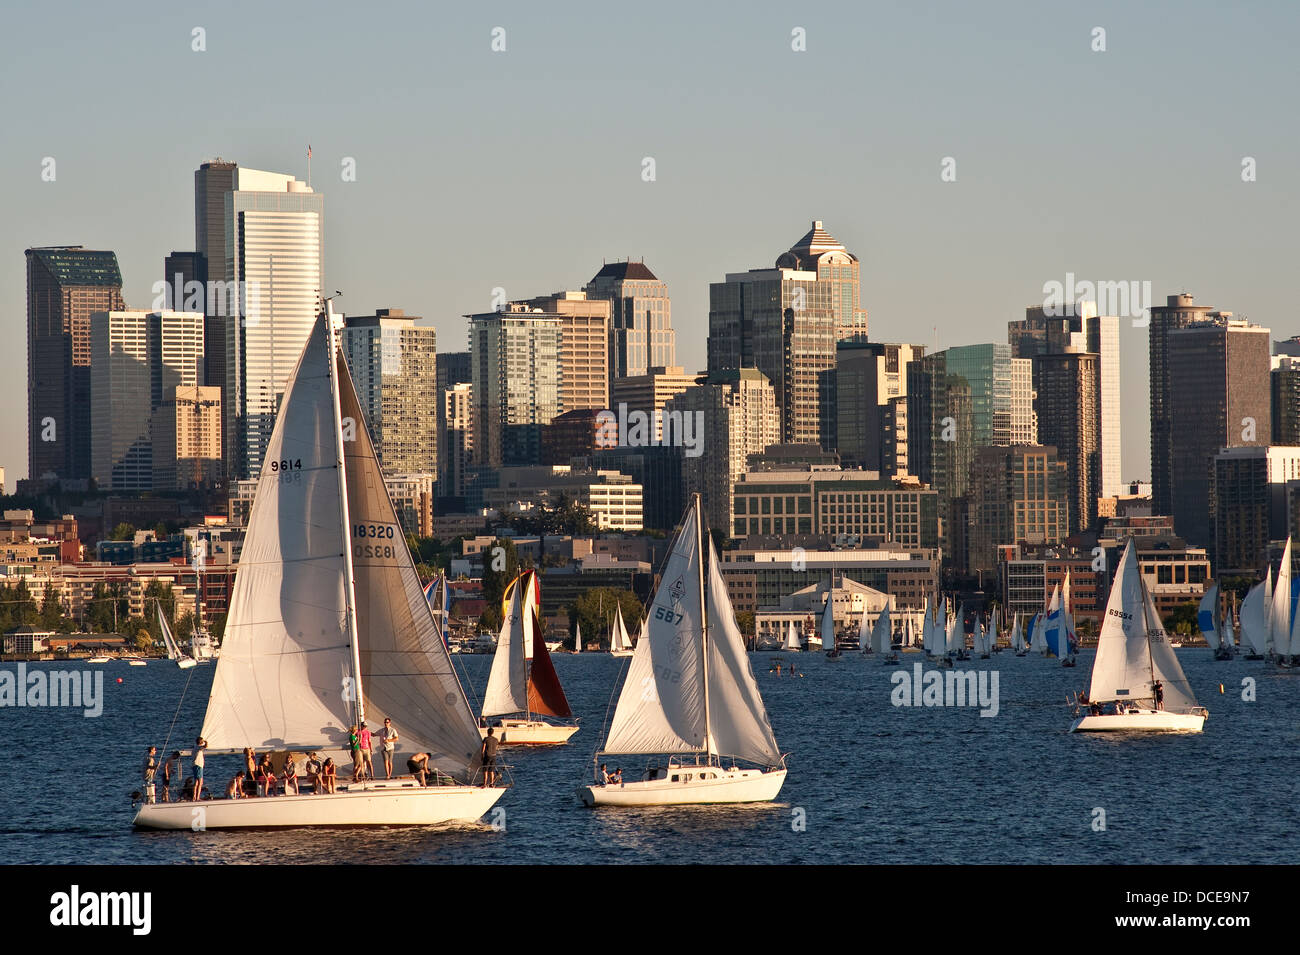 Seattle skyline with sailboats racing on Lake Union Washington State - Stock Image